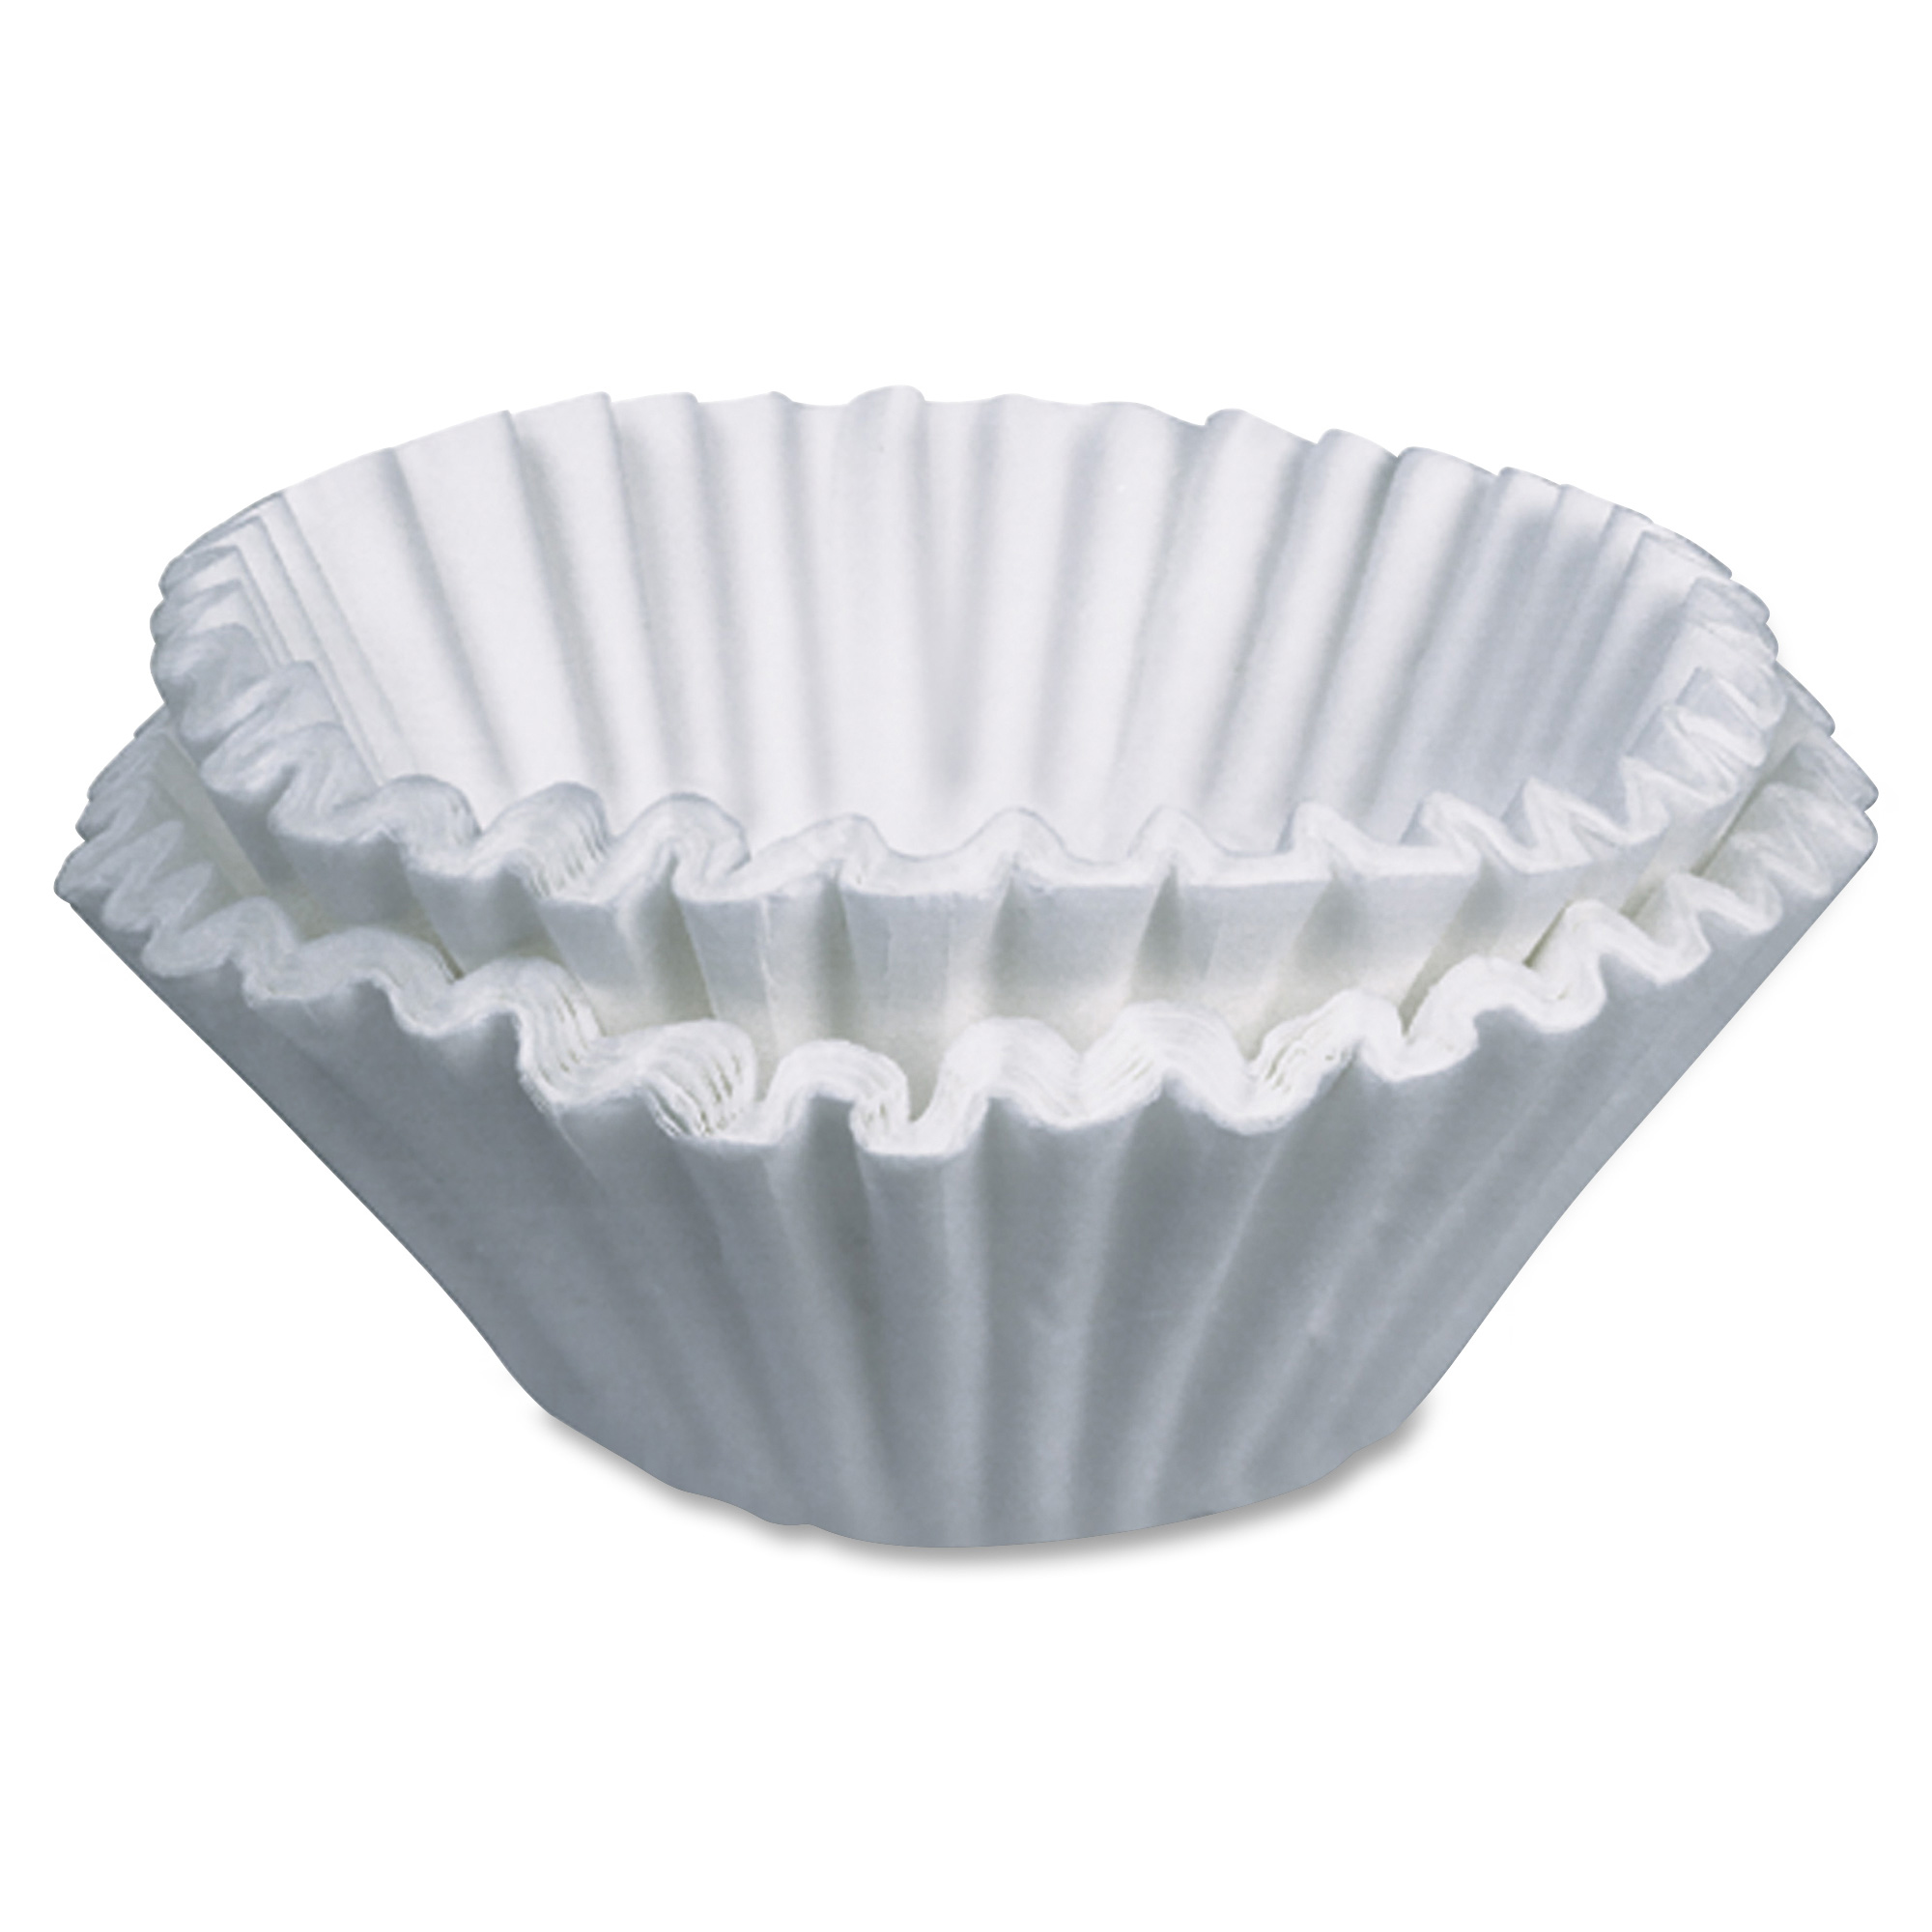 BUNN 8-12 Cup Coffee Filters, Bulk 1000 count, 20106 by Generic